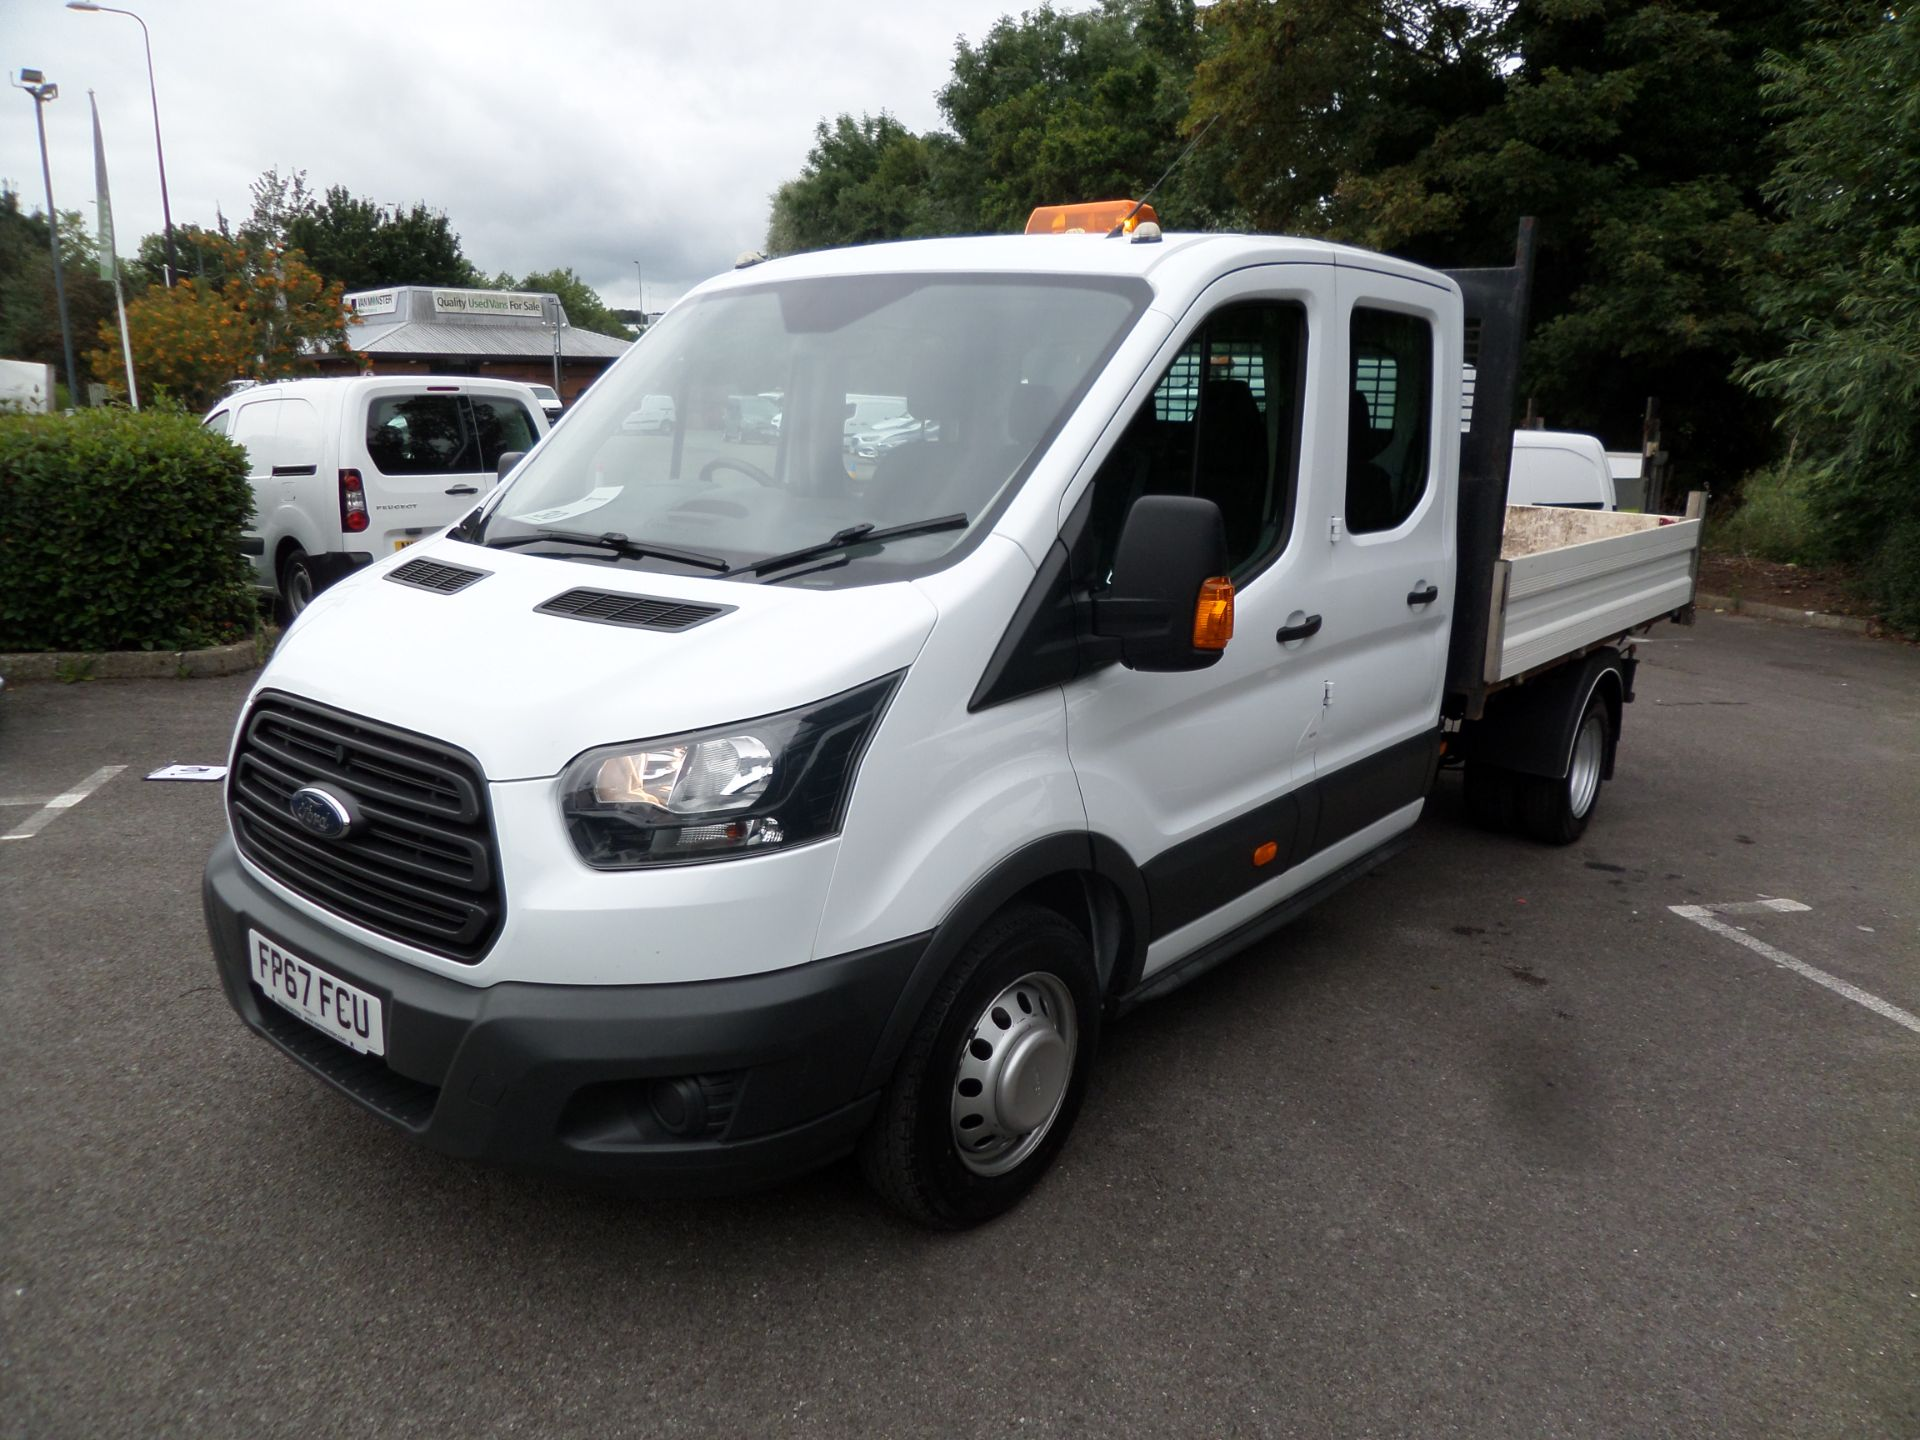 2018 Ford Transit 2.0 Tdci 130Ps Double Cab Tipper Euro 6 (FP67FCU) Image 10